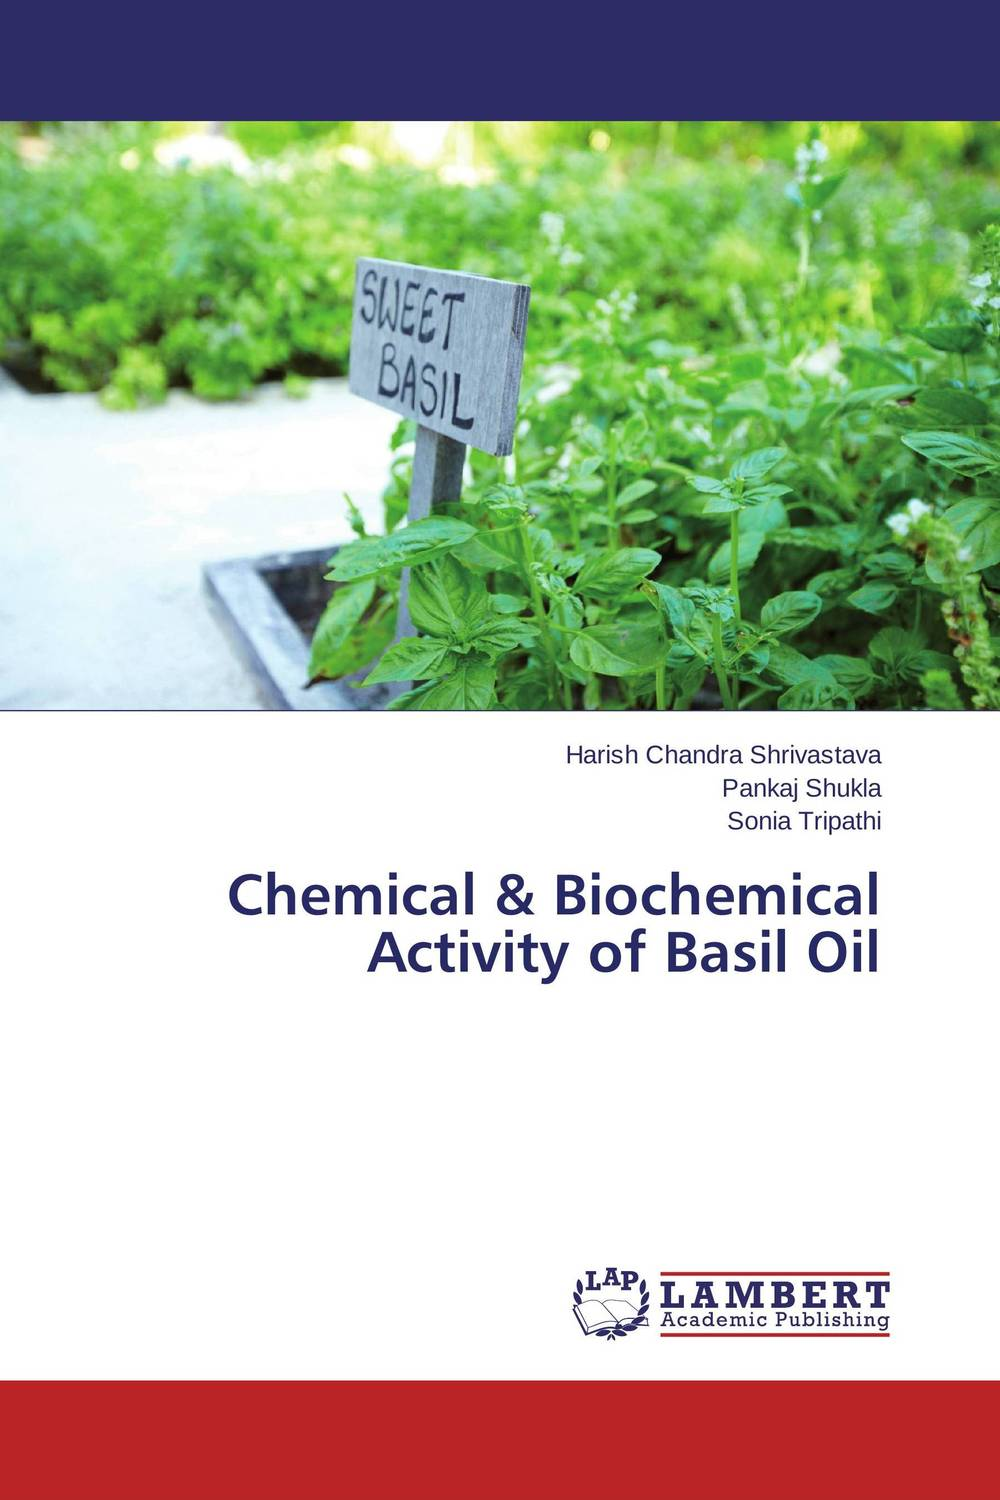 Chemical & Biochemical Activity of Basil Oil